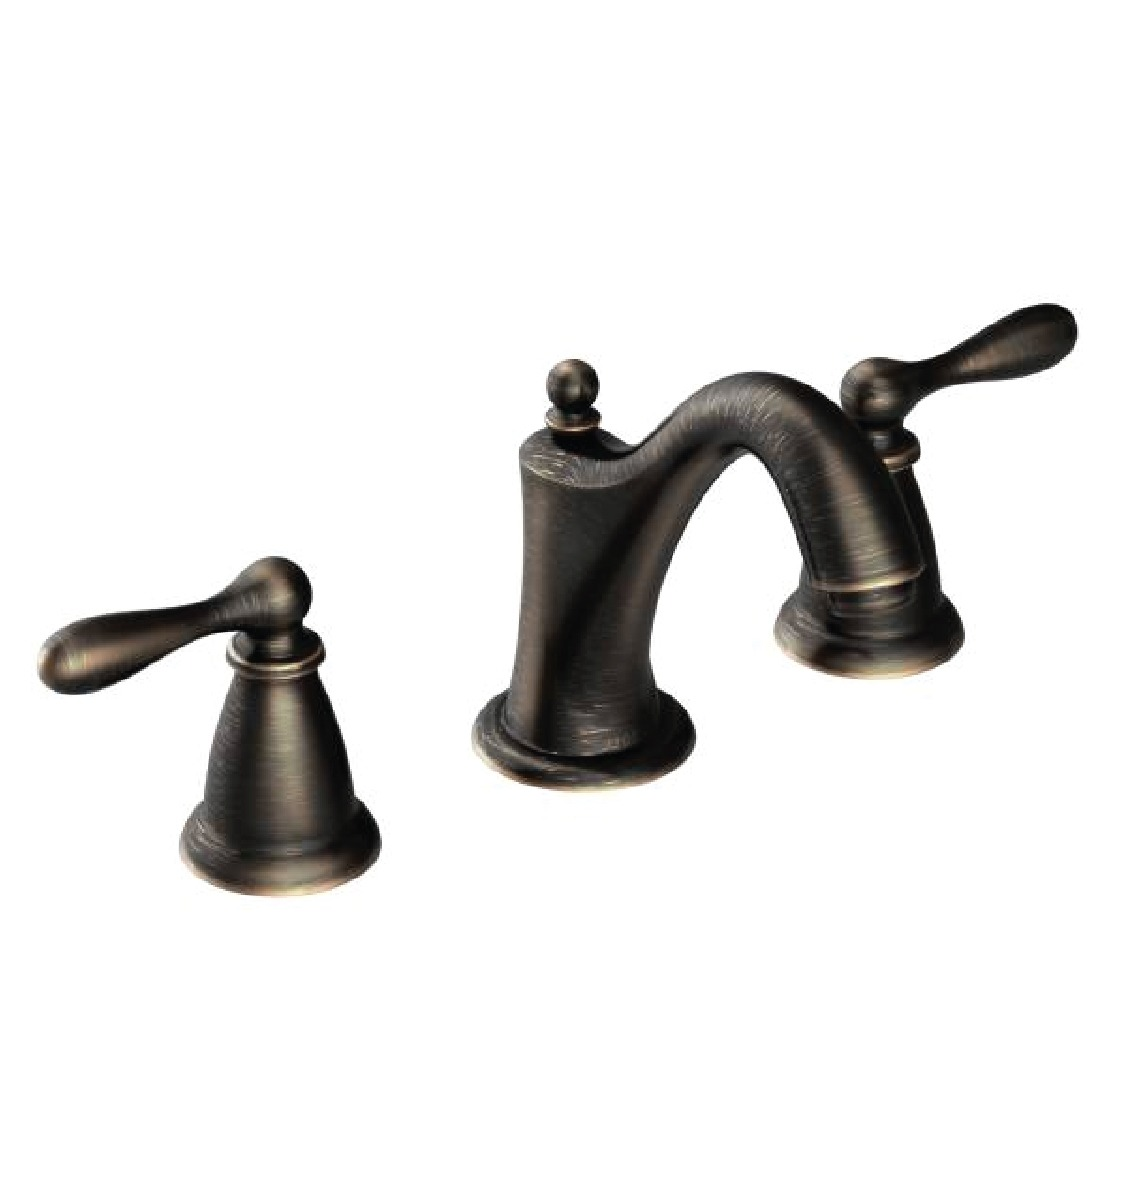 Moen ca84440brb caldwell 4 or 8 two handle high arc bathroom faucet bronze finish schilling - Moen shower faucet ...